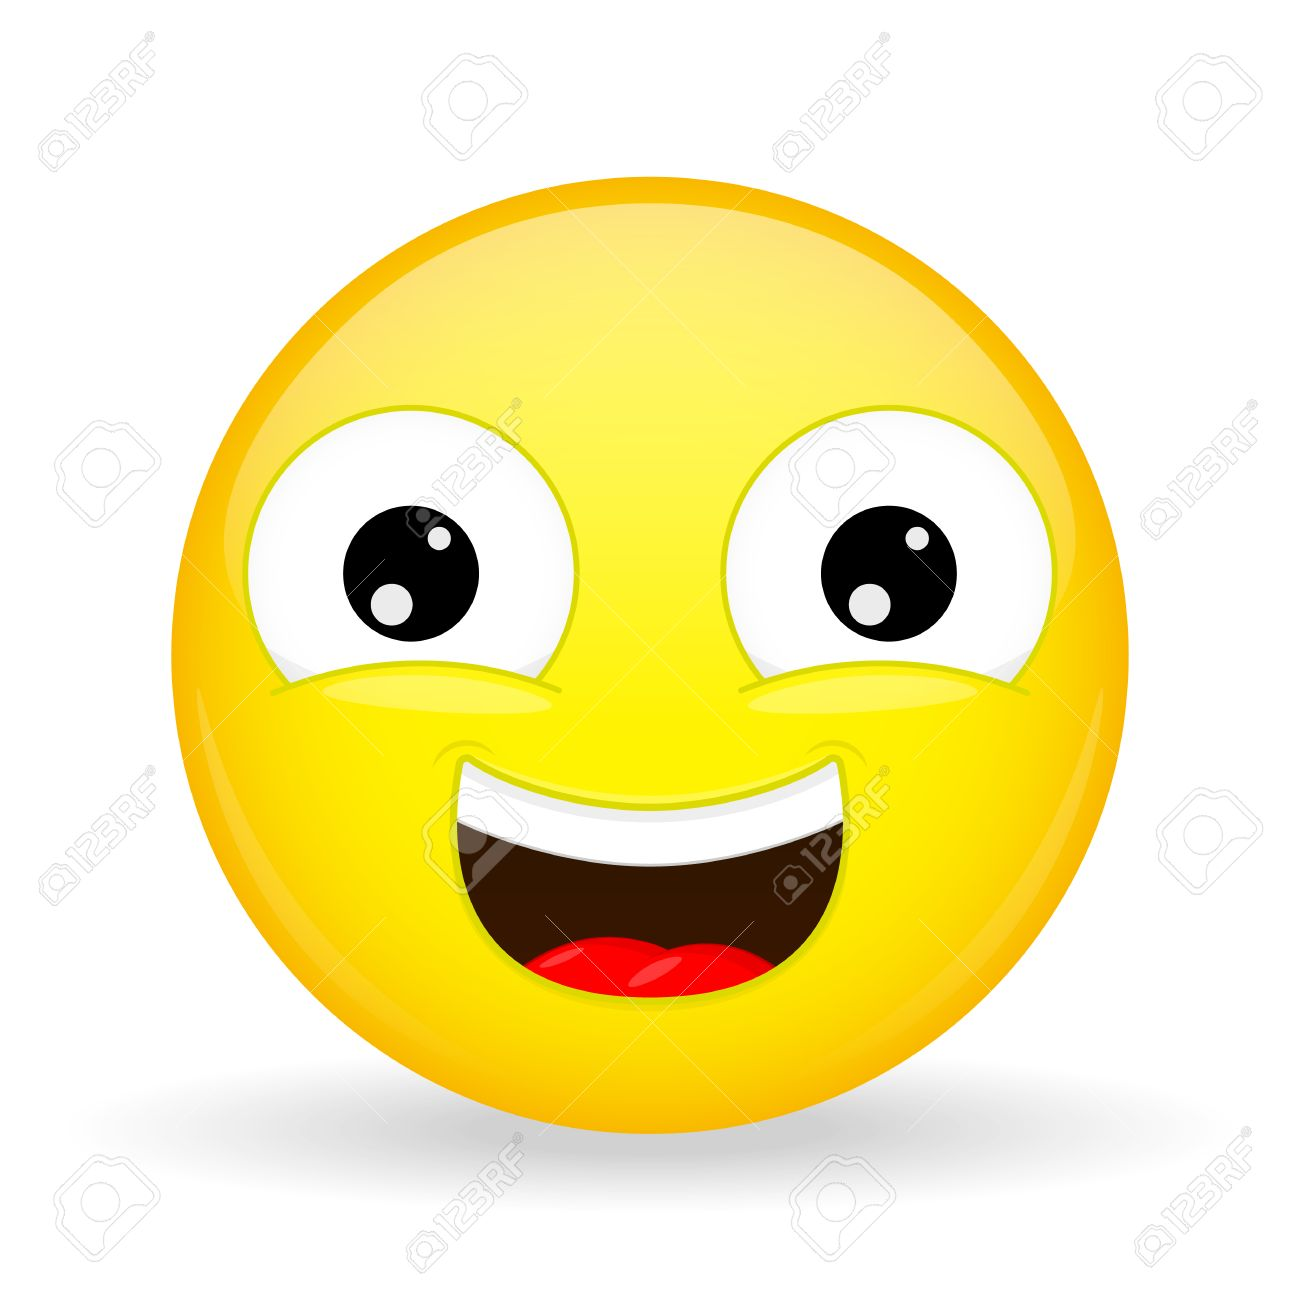 laughing emoji emotion of happiness sweet smile emoticon cartoon style stock vector